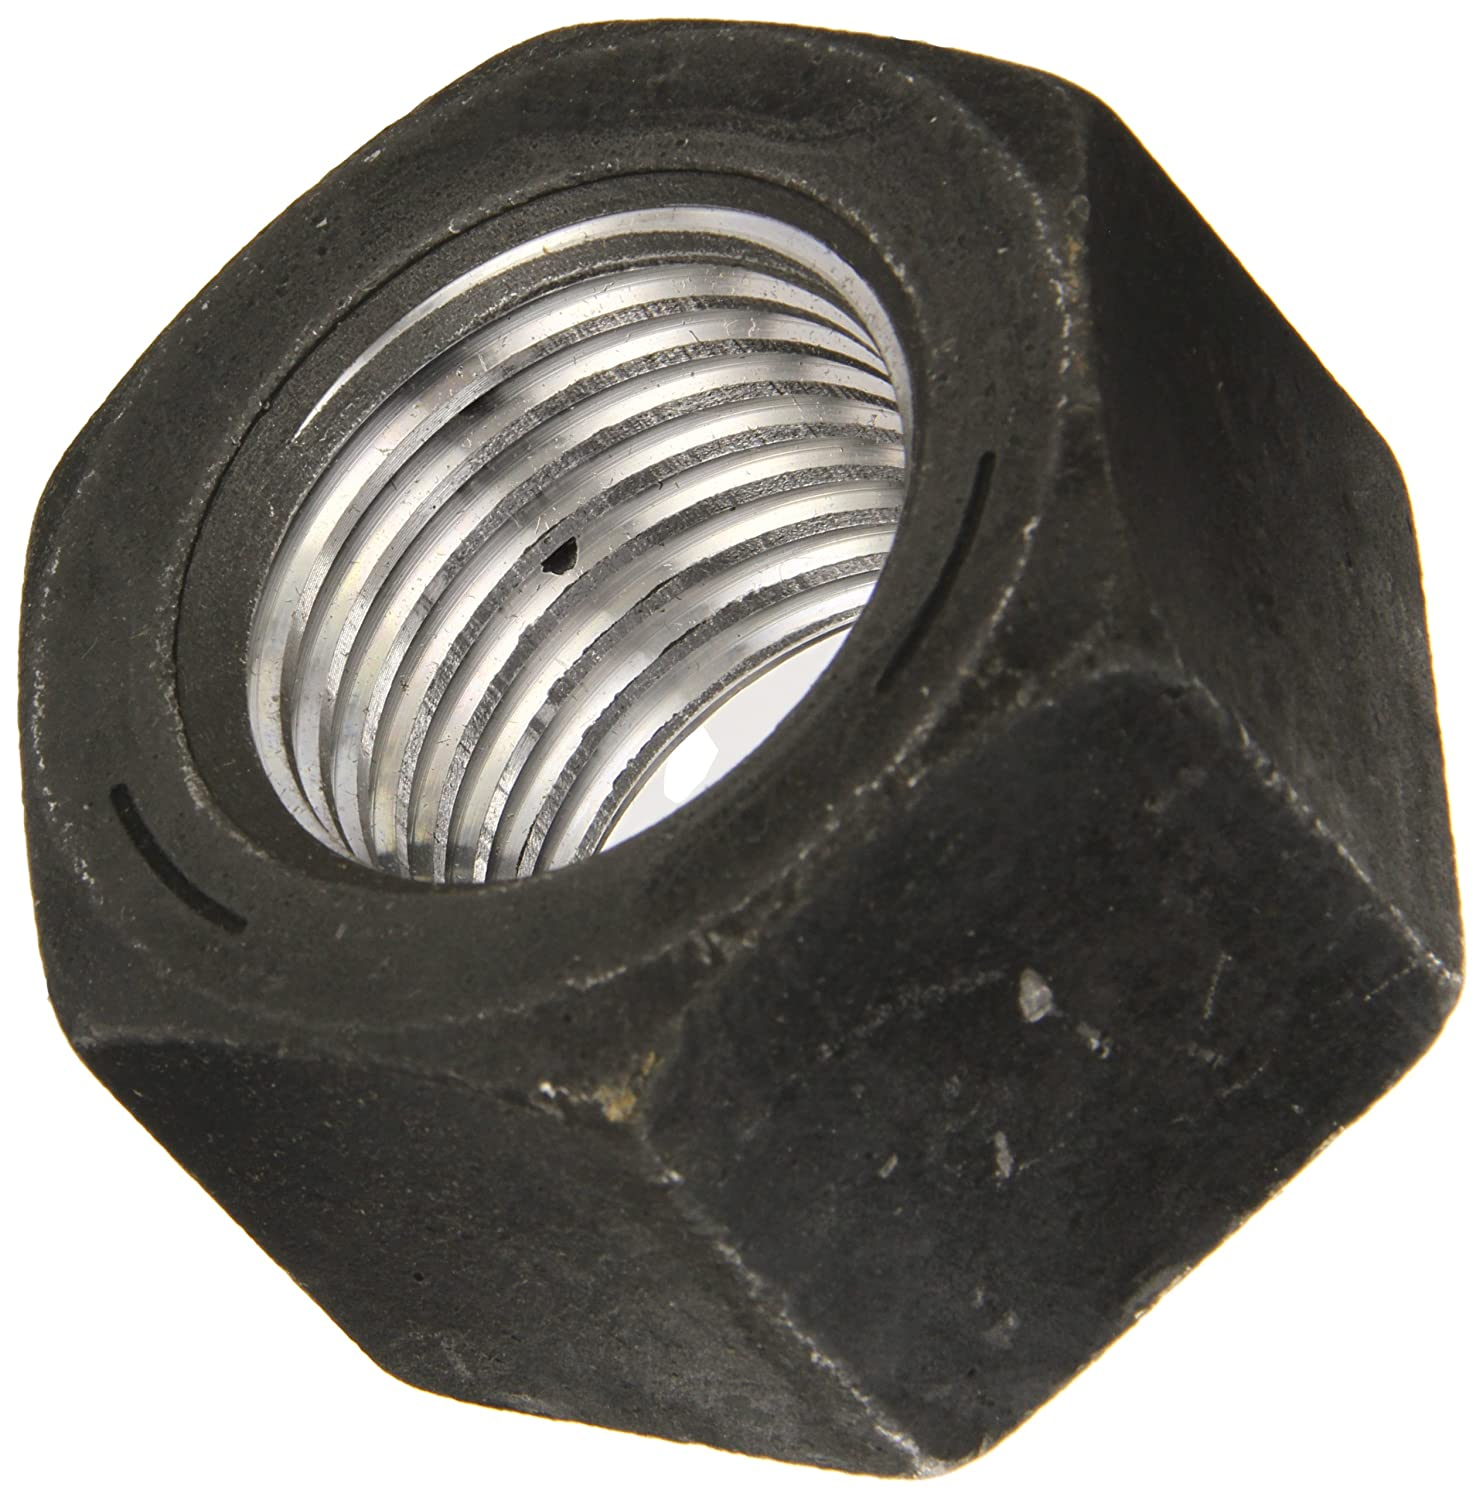 Plain Finish Steel Heavy Hex Nut 1-23//32 Thick 1-3//4-5 Thread Size 2-3//4 Width Across Flats 1-23//32 Thick Small Parts B009EF1HA4 1-3//4-5 Thread Size Grade 5 ASME B18.2.2 2-3//4 Width Across Flats